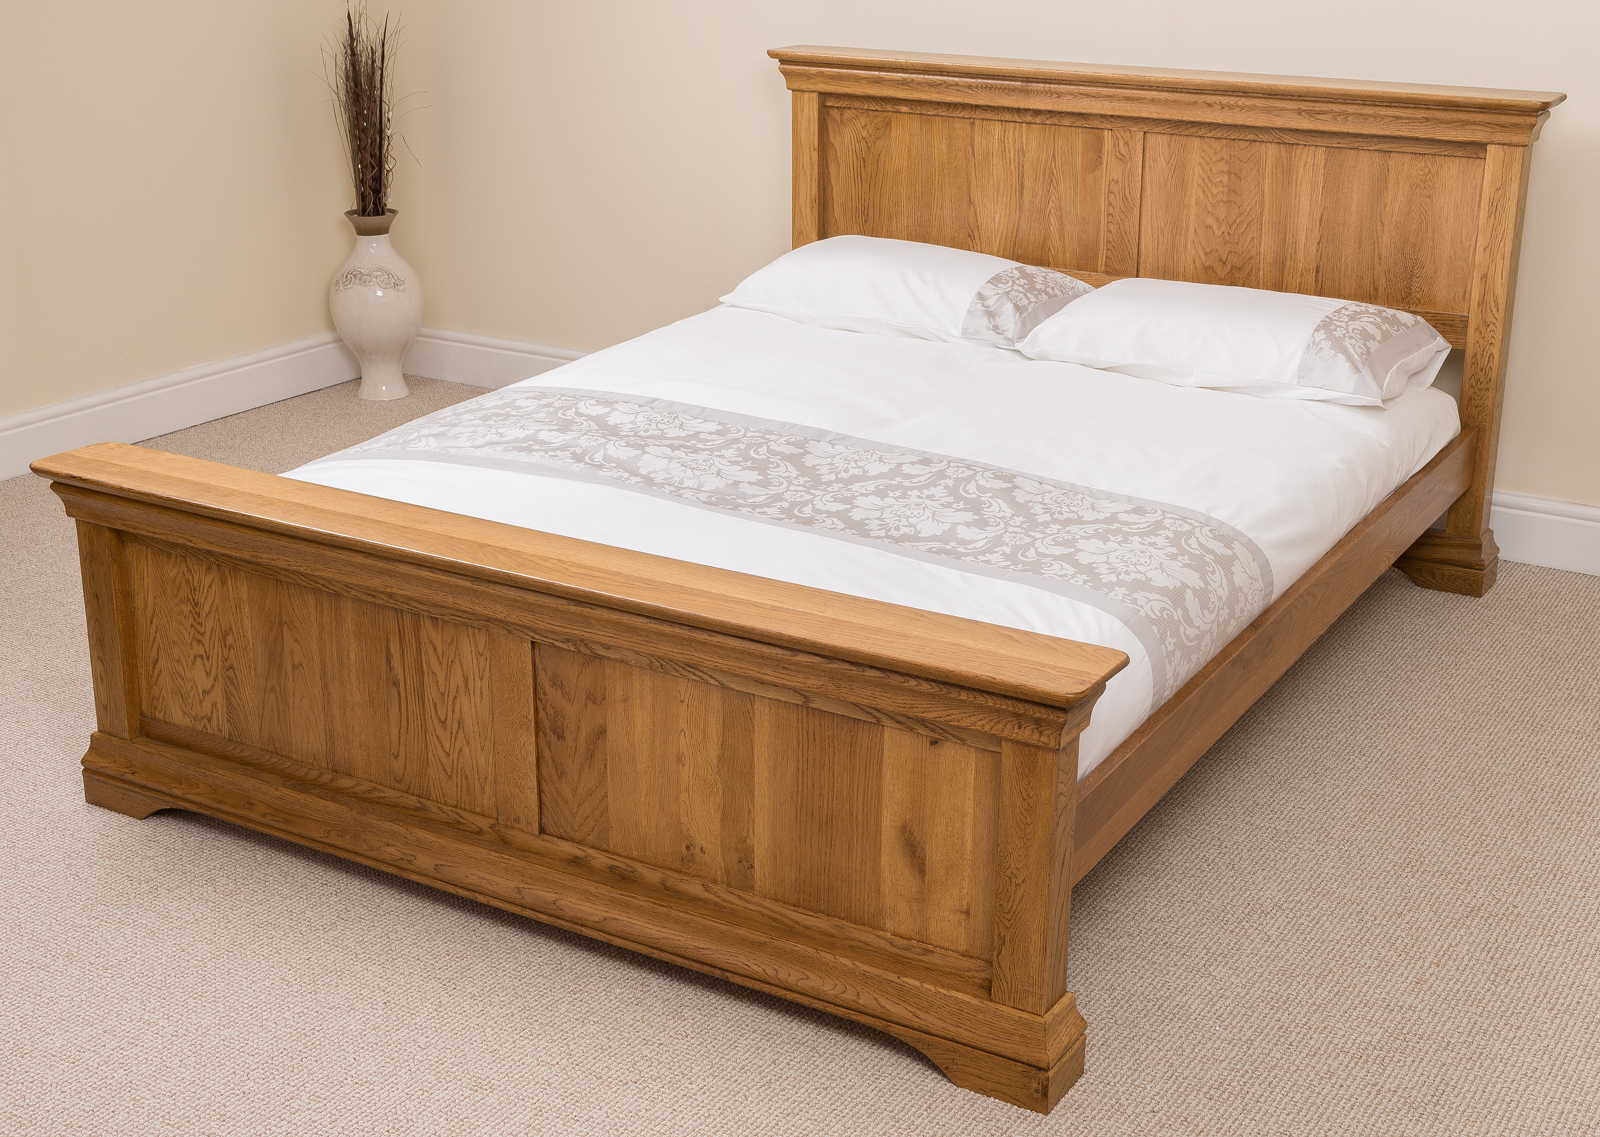 solid oak wood super king size bed frame bedroom furniture ebay